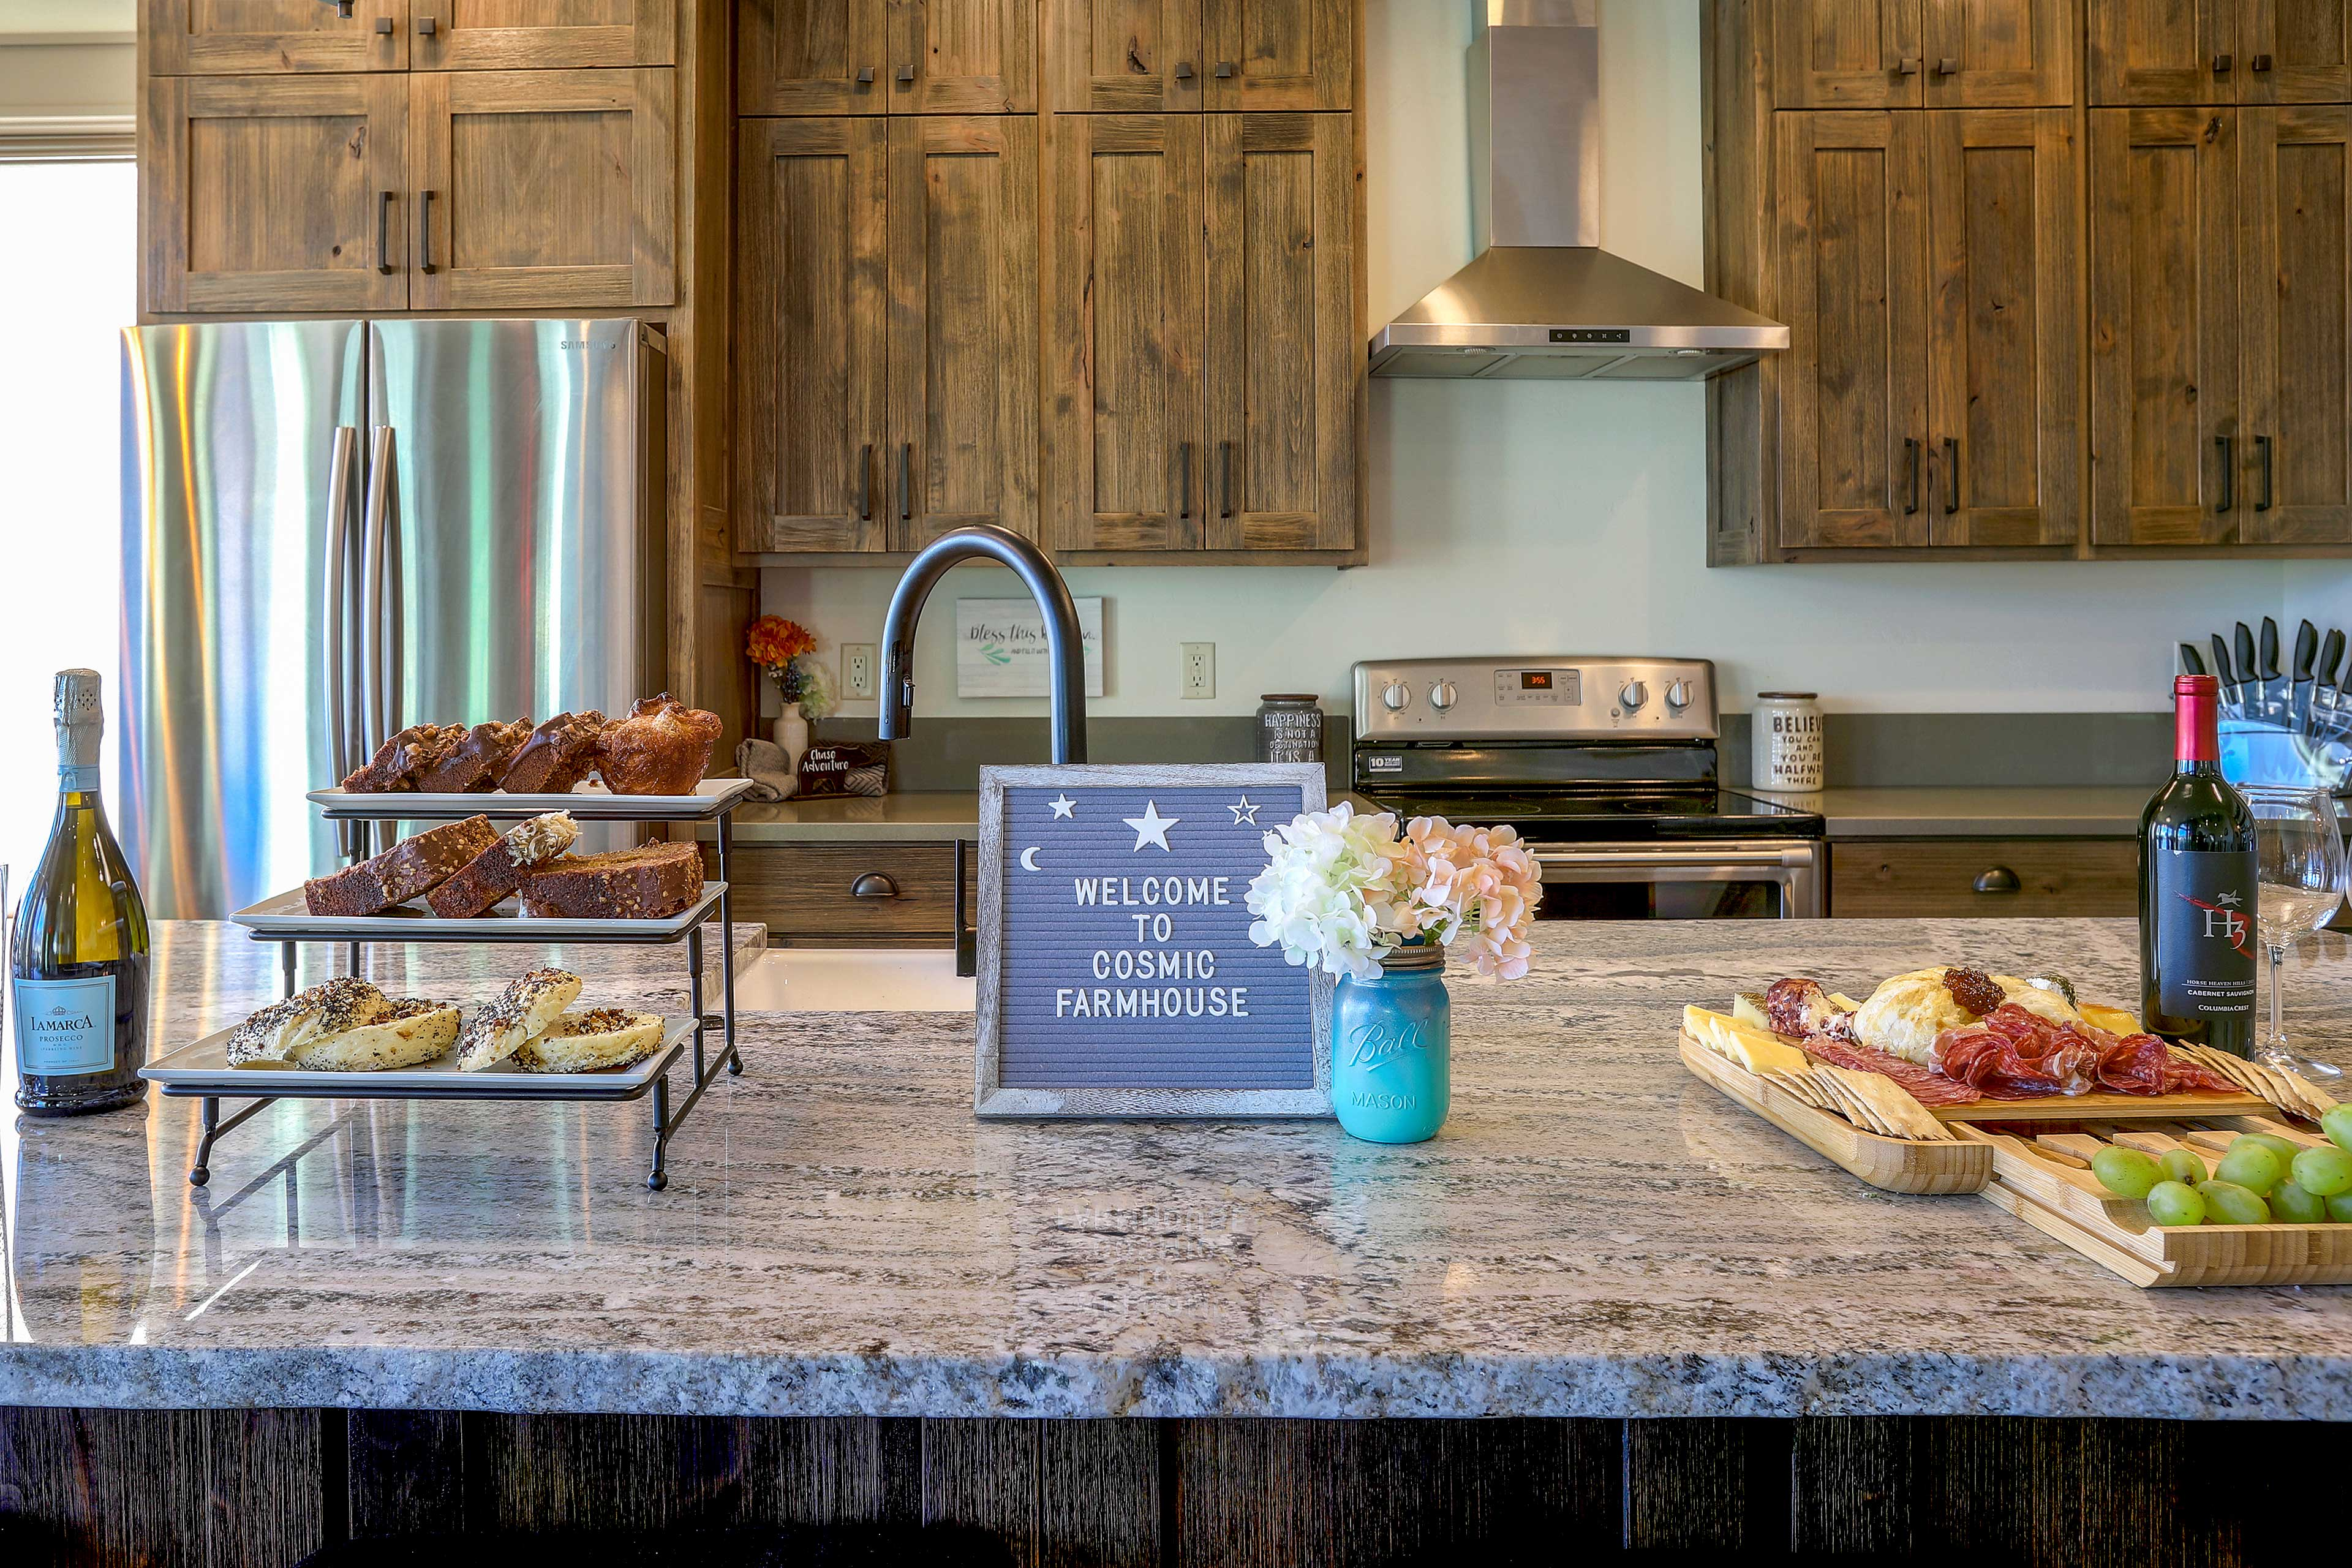 An impressive array of meats, cheeses, & baked goods welcomes you to the home.